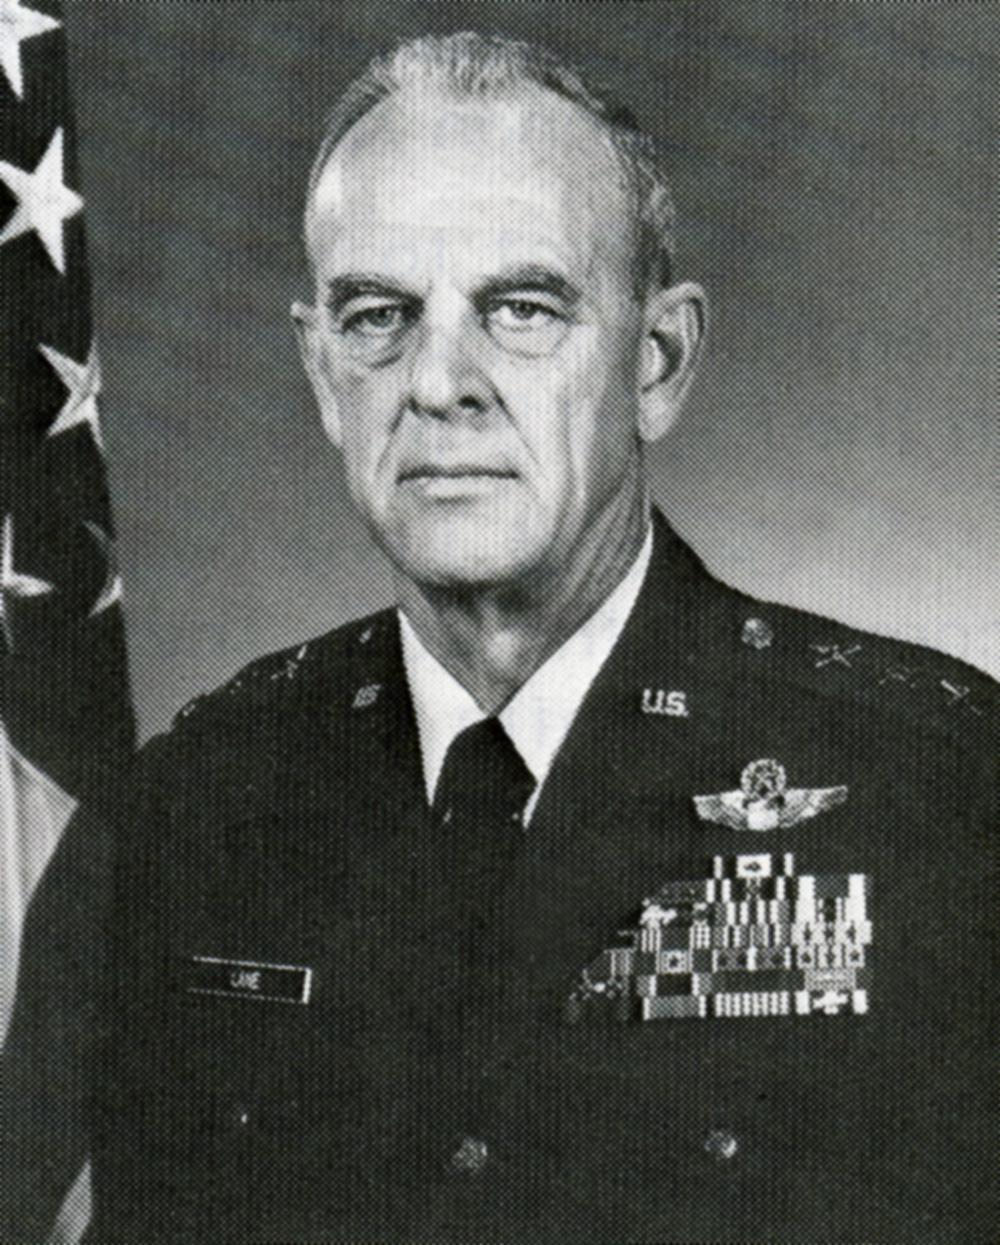 Former Commandant Lt. Gen. Howard M. Lane, Sr.